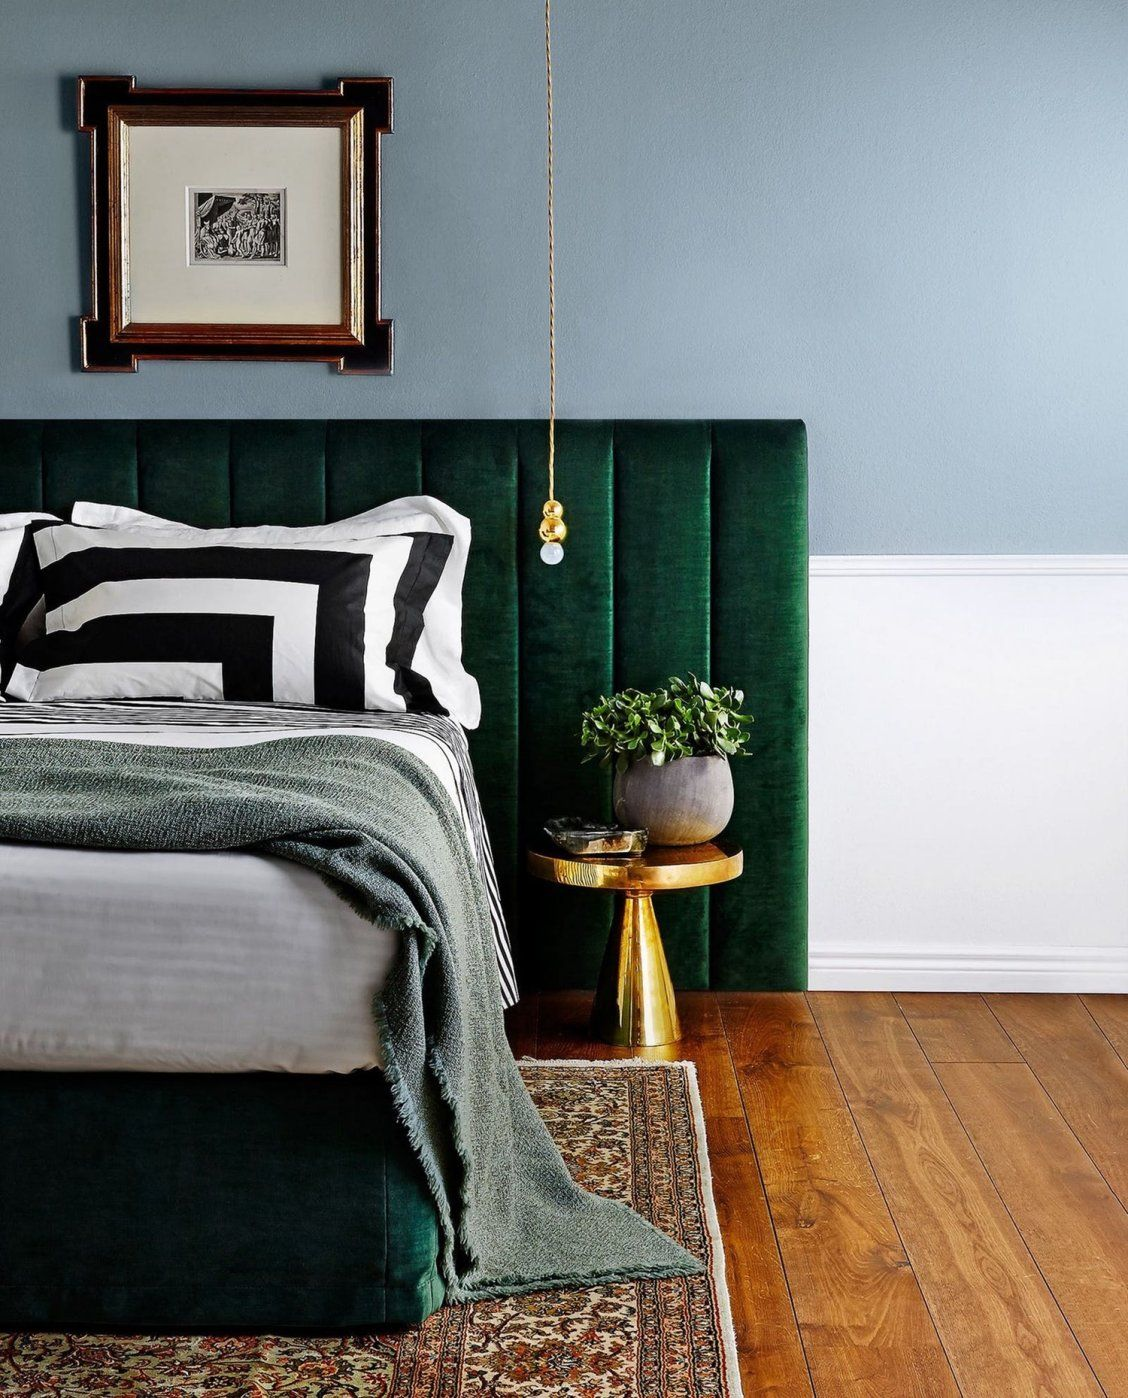 D life home interiors our favorite new bedroom trend is larger than life  bedrooms